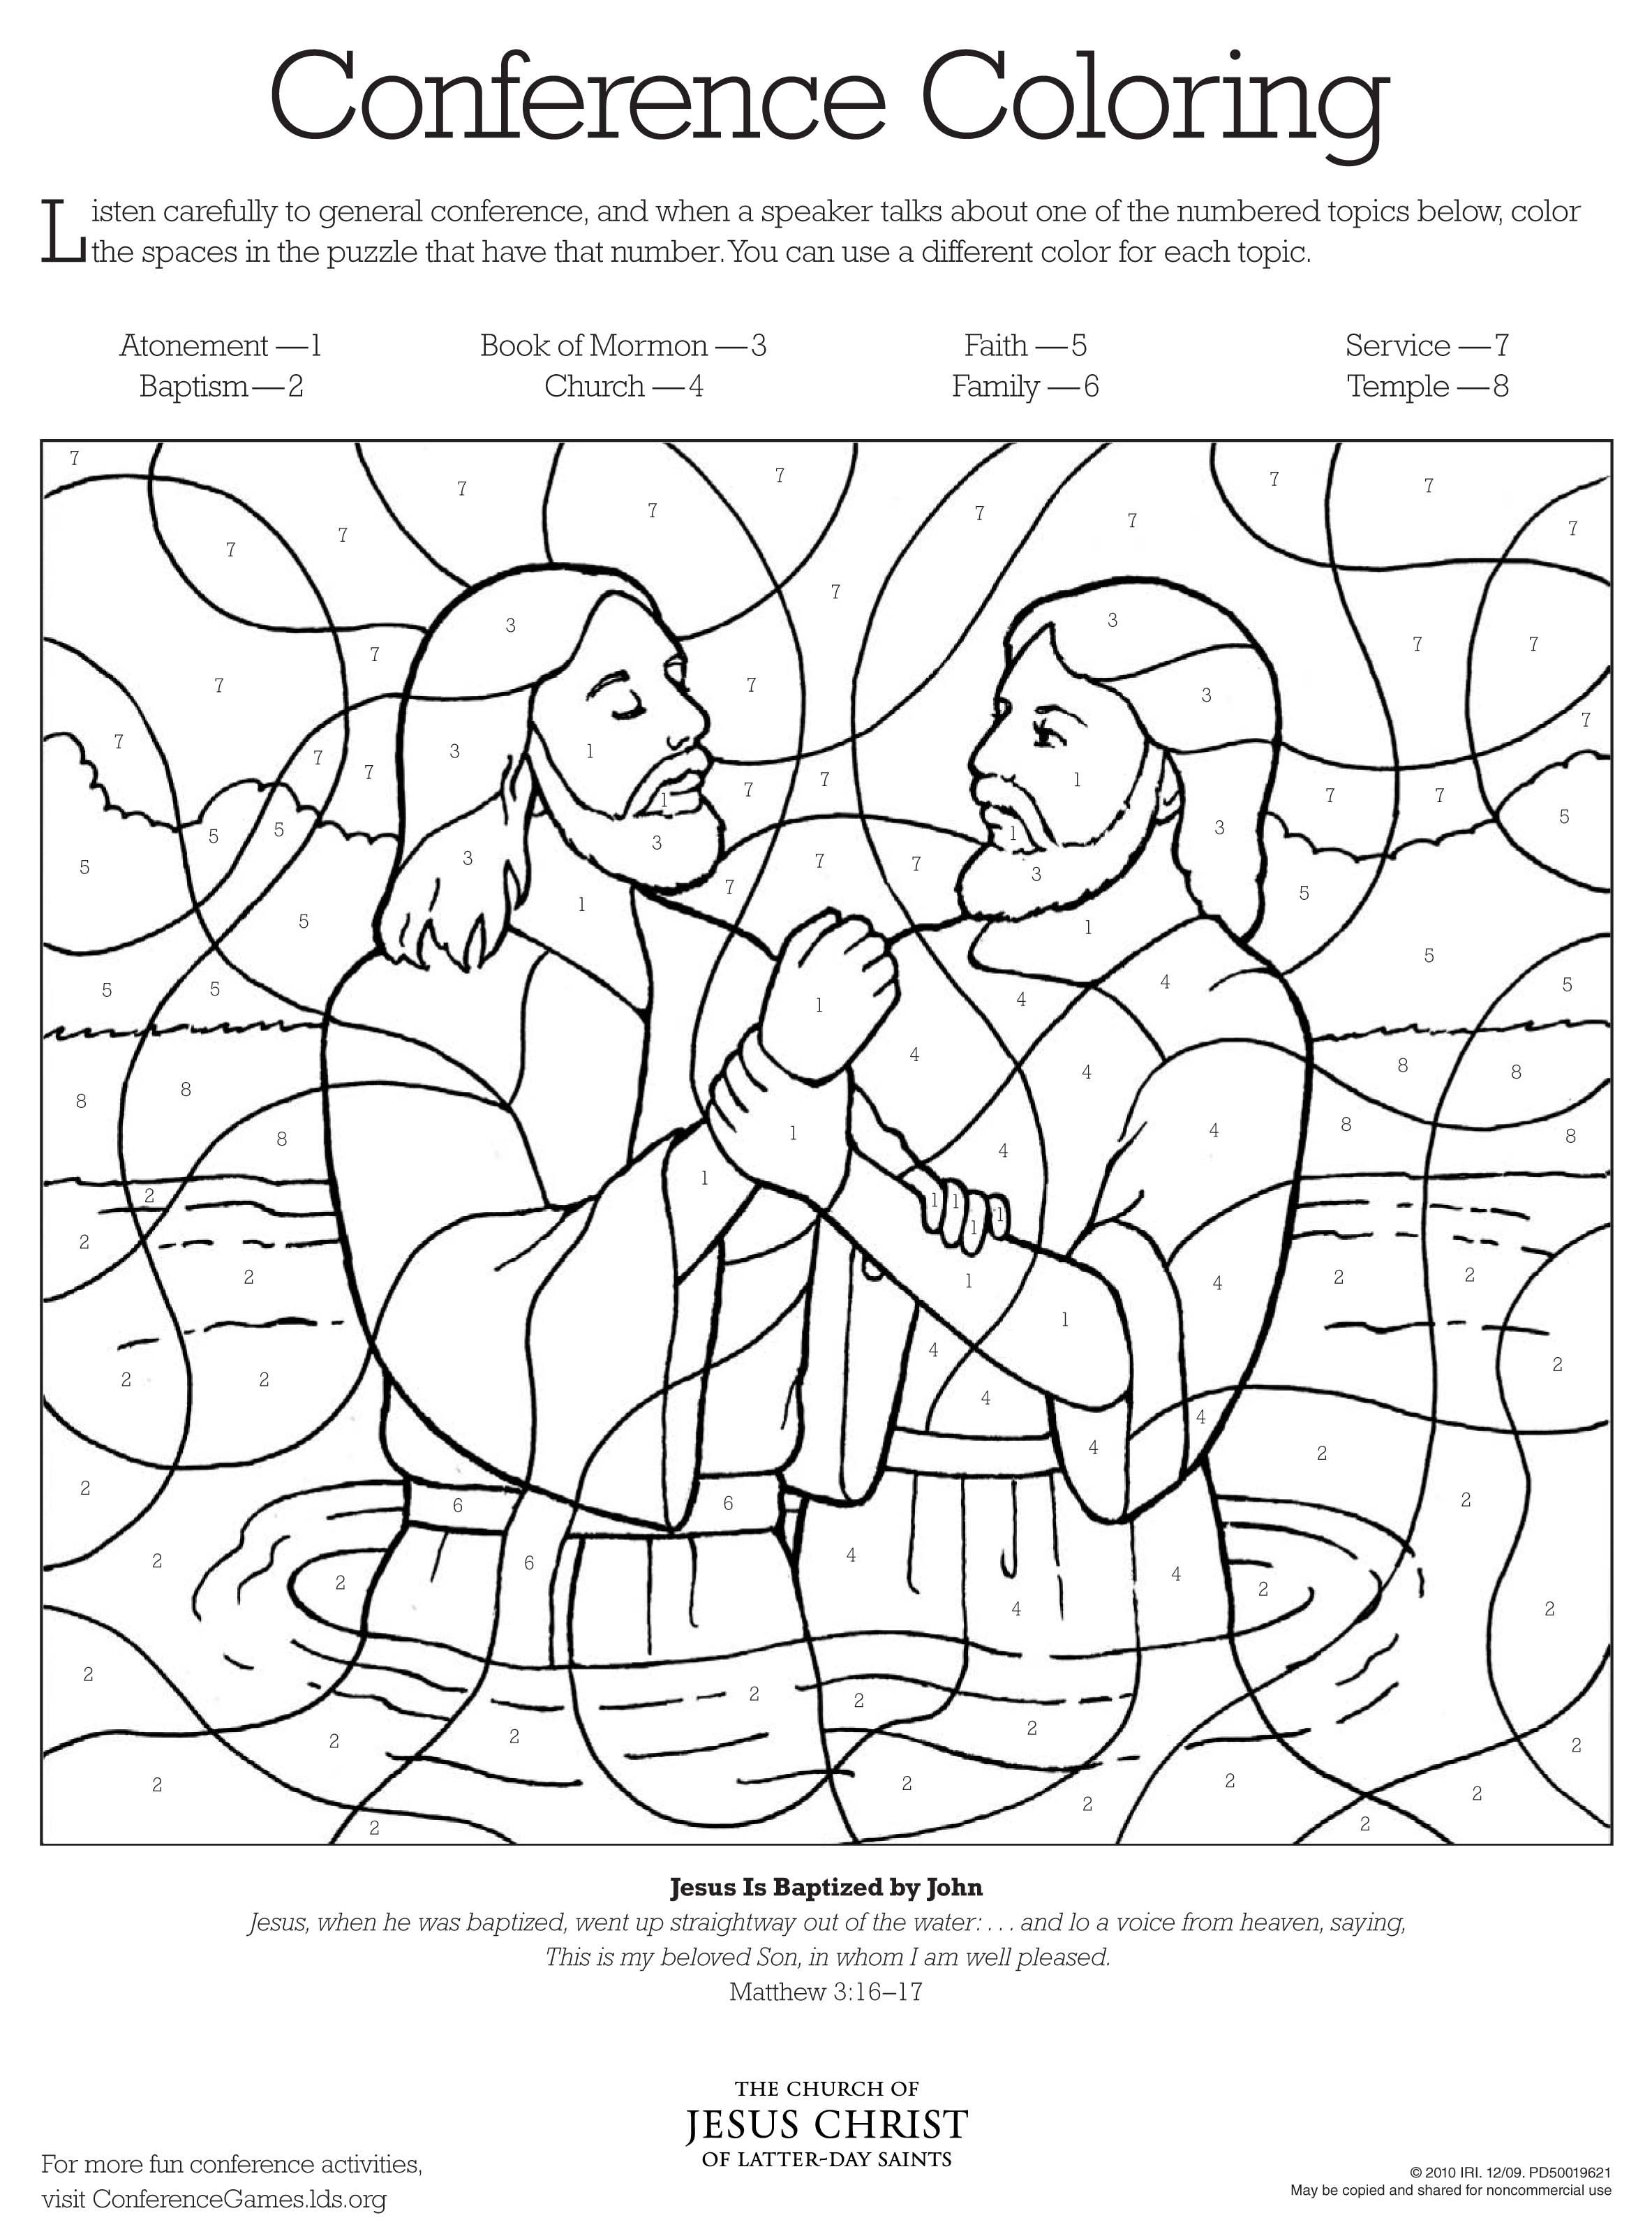 Conference Coloring page 2 Churches General conference and